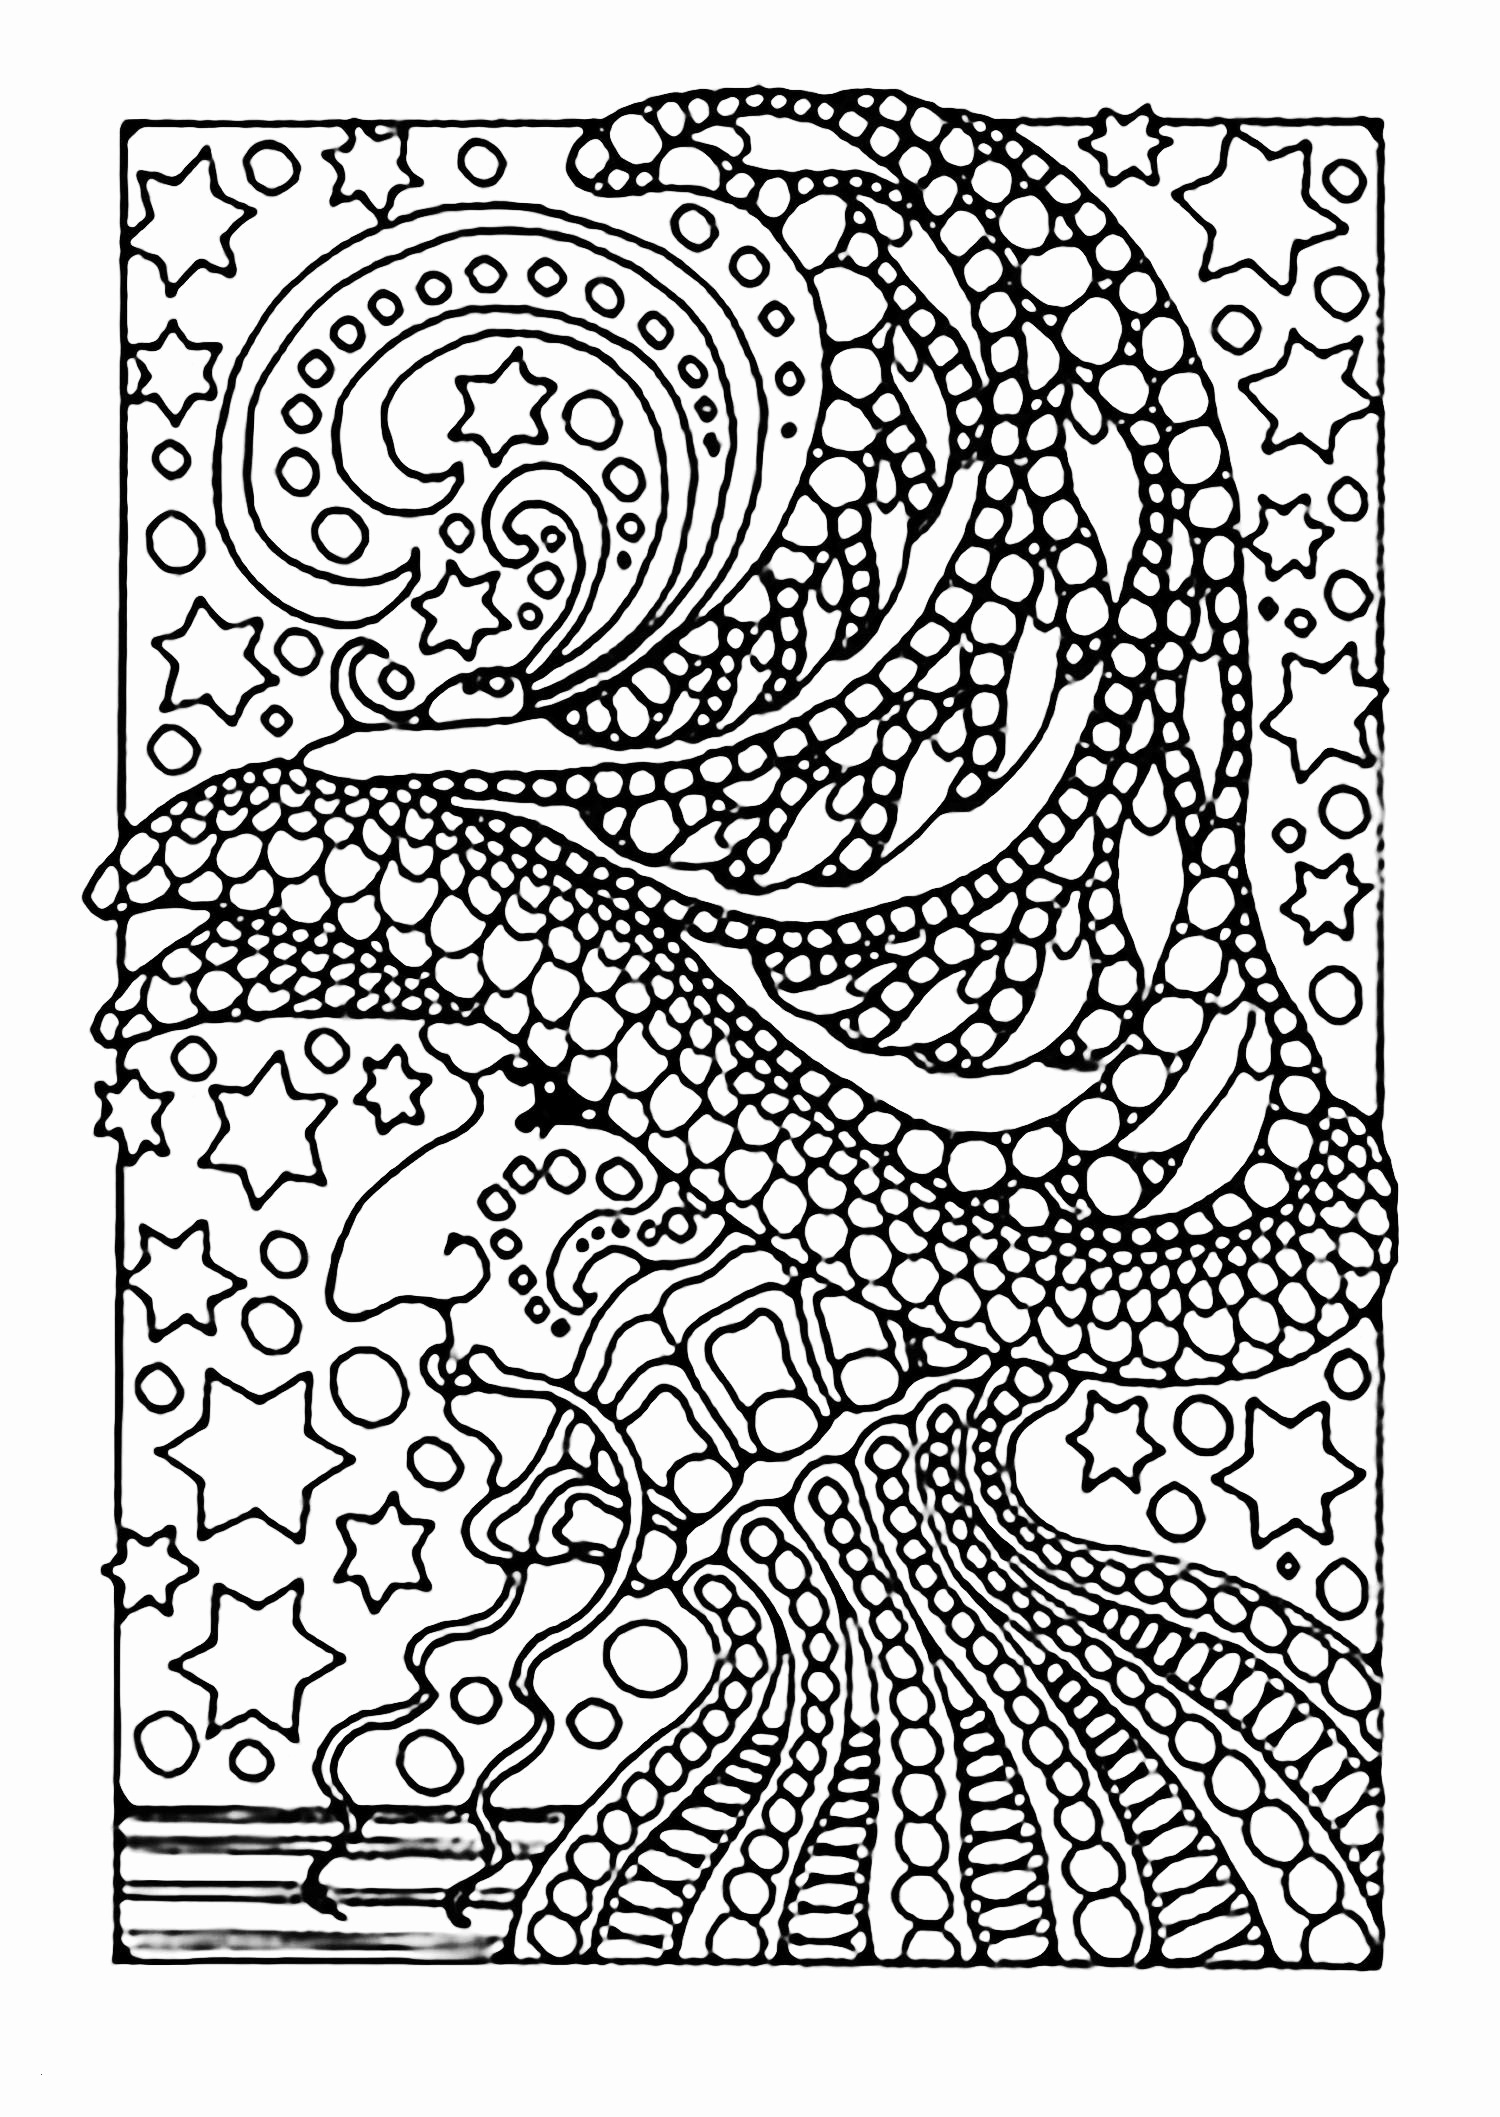 Puzzle Piece Coloring Pages  Printable 13l - Free For kids